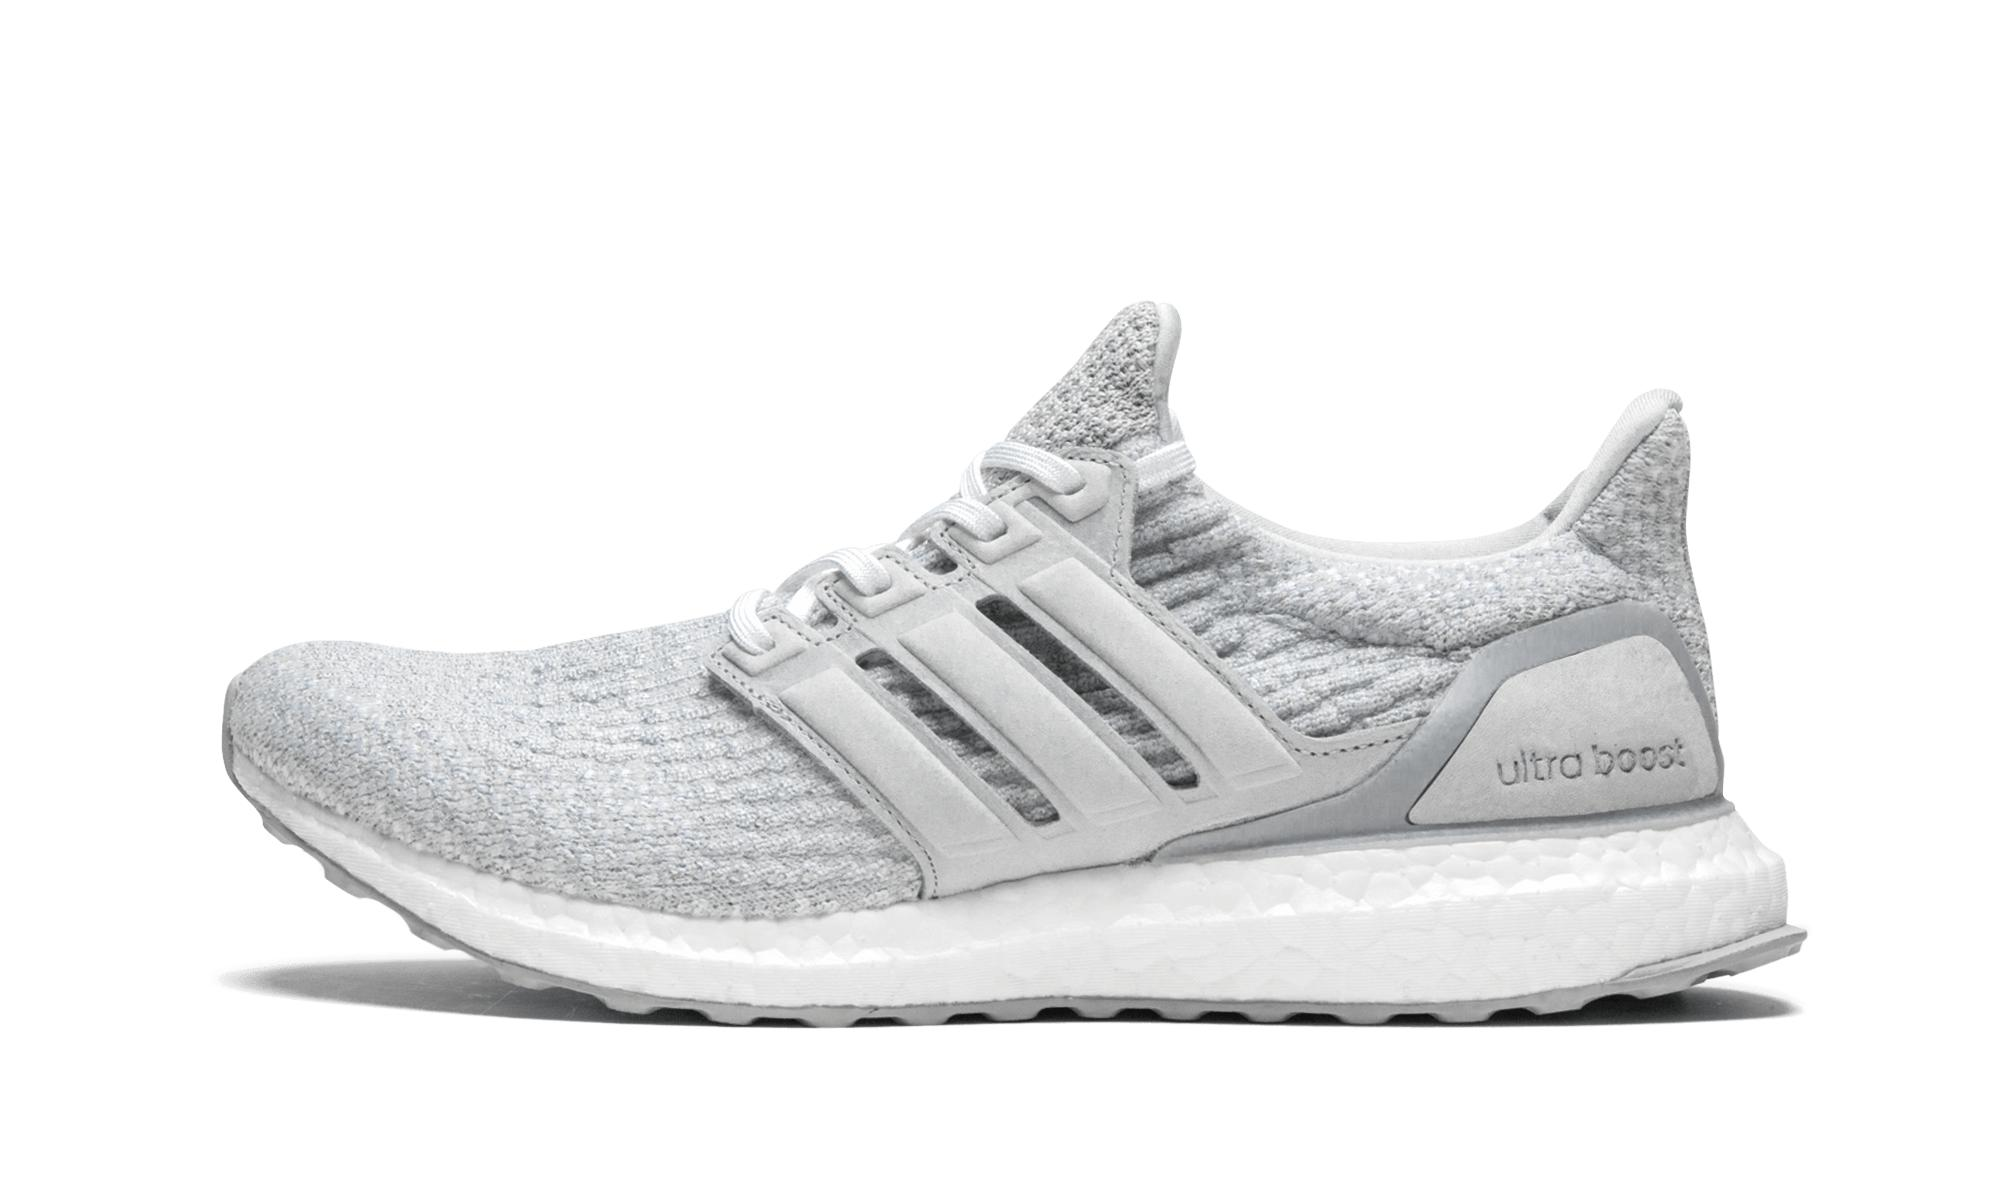 6550c8d69cfdf Lyst - adidas Ultraboost Reigning Champ in Gray for Men - Save 37%